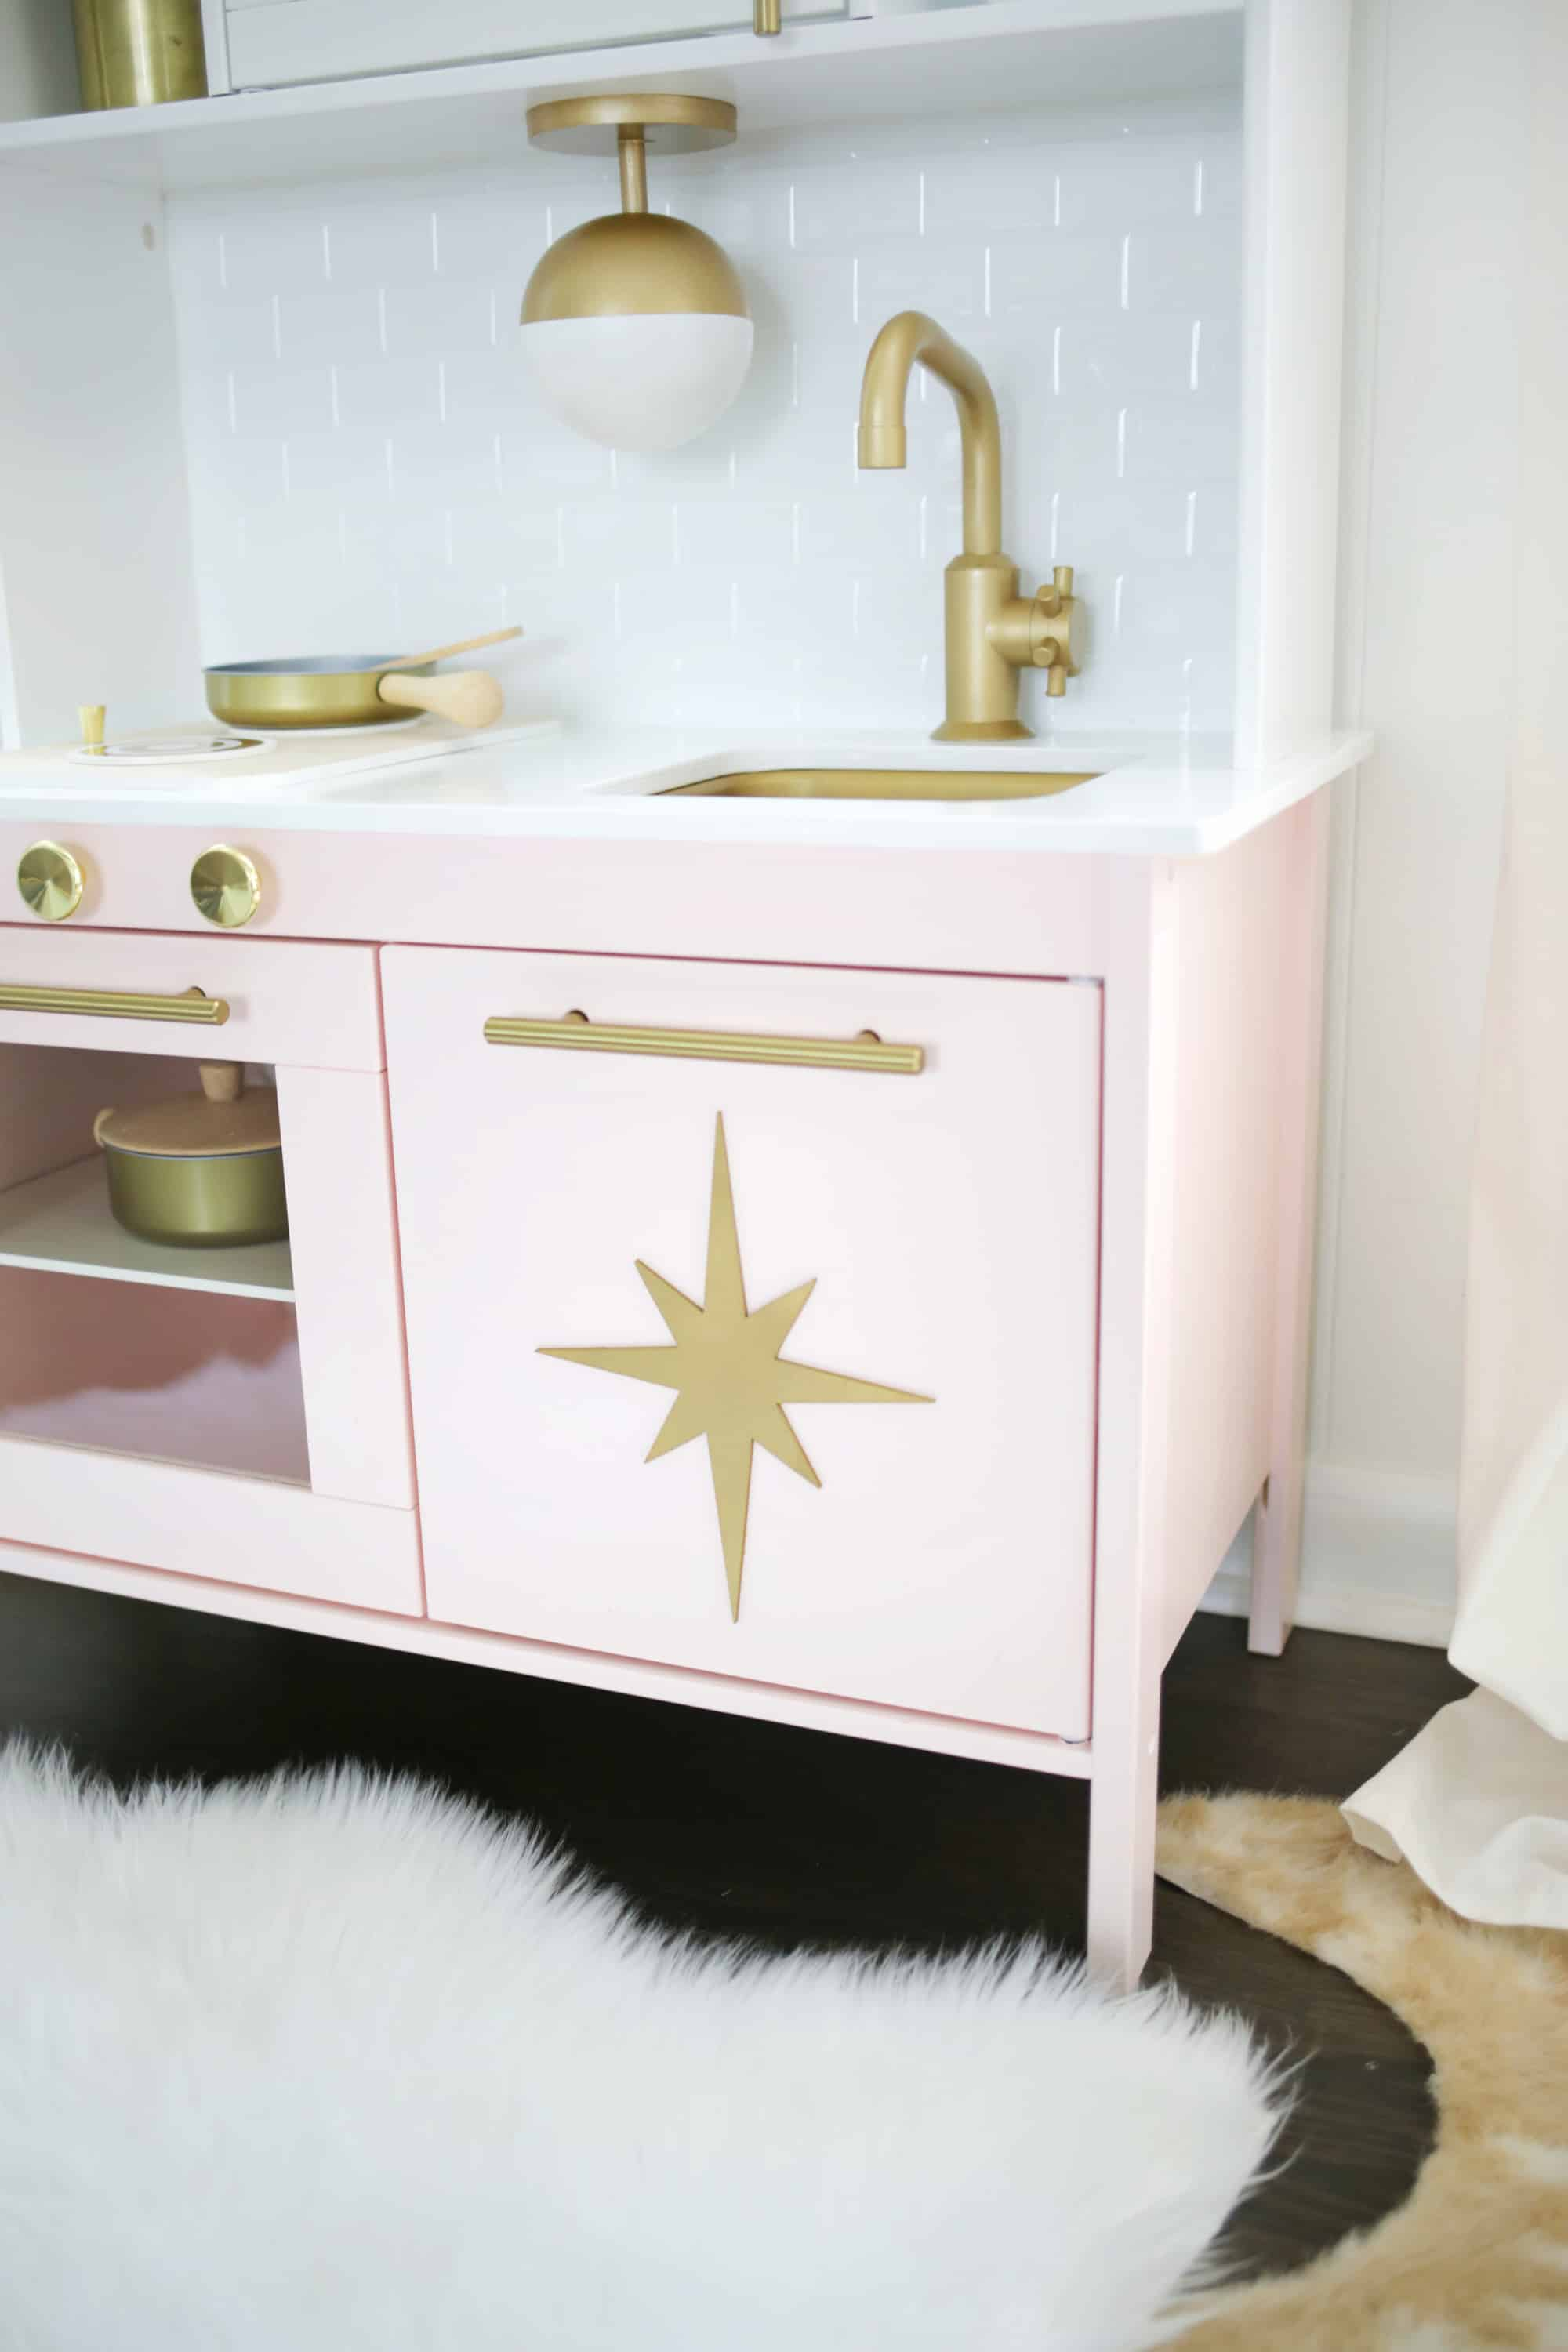 play kitchen ikea where to buy cheap cabinets mid century modern hack a beautiful mess switching out the hardware was pretty easy although you could paint handles as well for budget version and i also painted gold star wooden decal